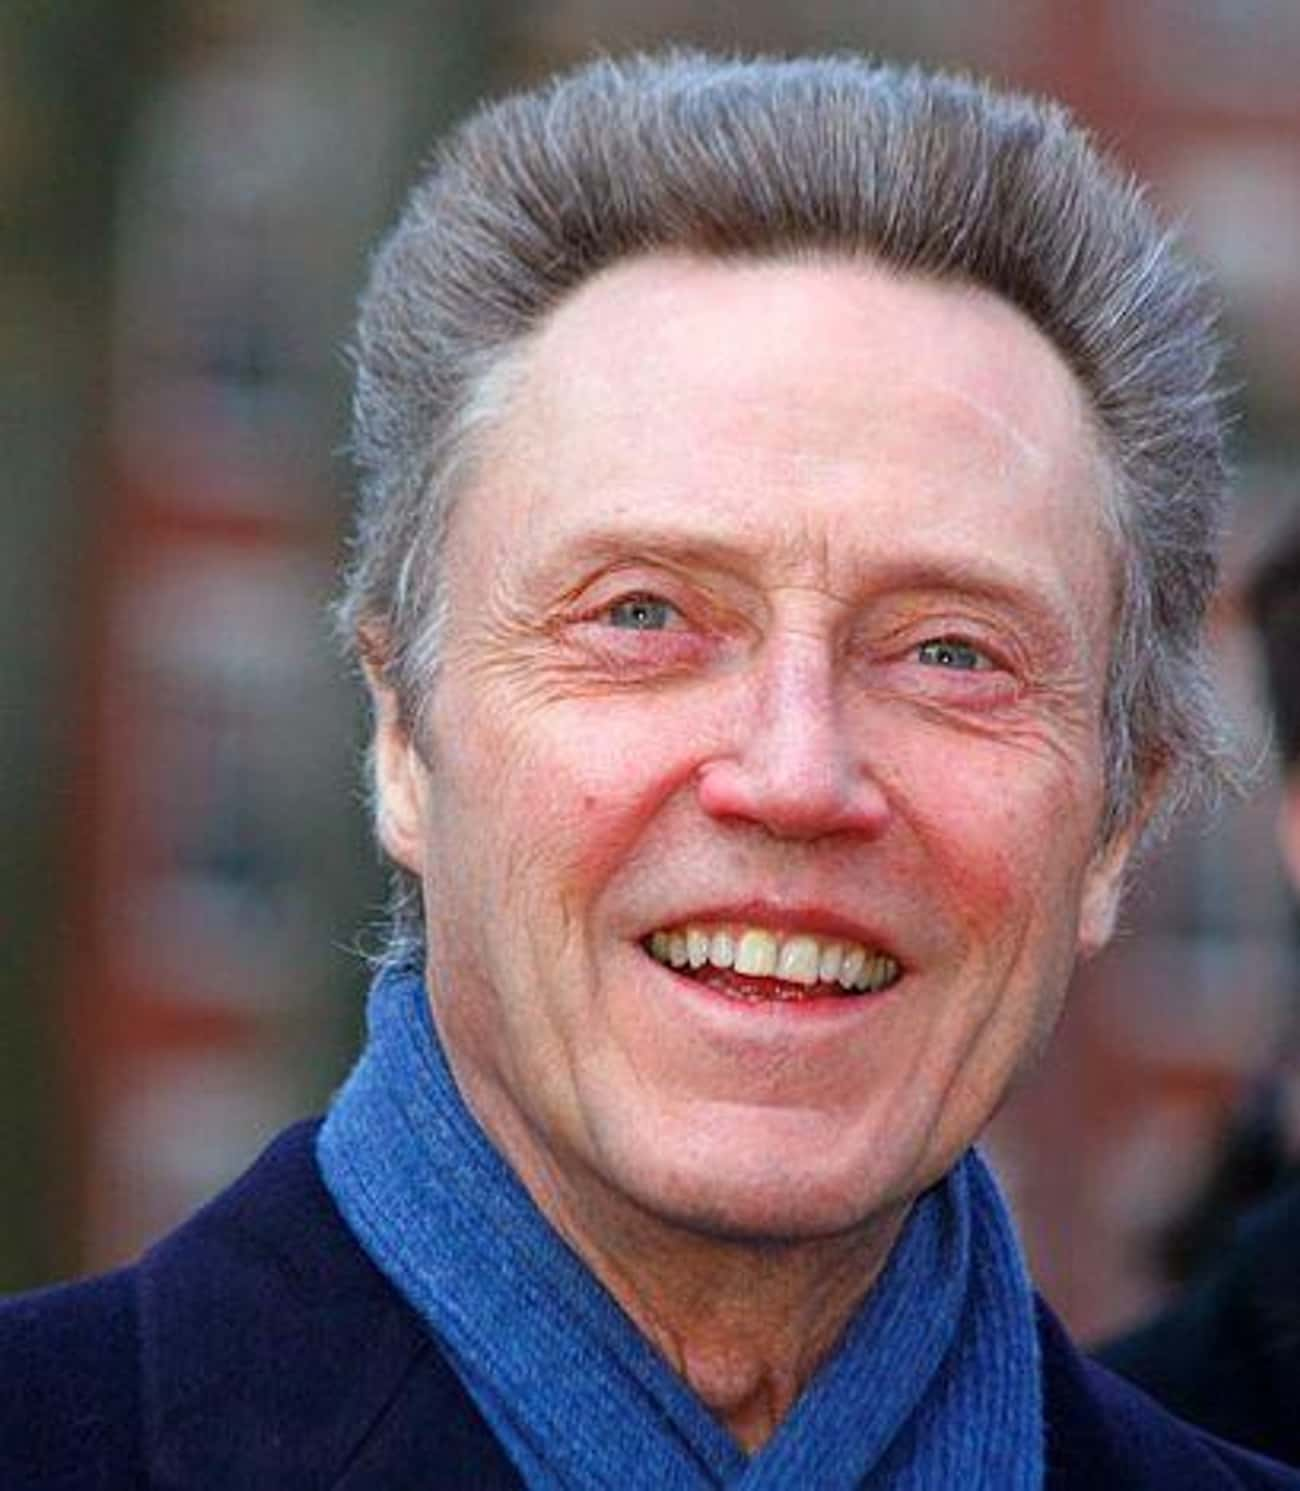 Christopher Walken Tamed Lions is listed (or ranked) 2 on the list Celebrities Who Had Weird Jobs Before They Were Famous